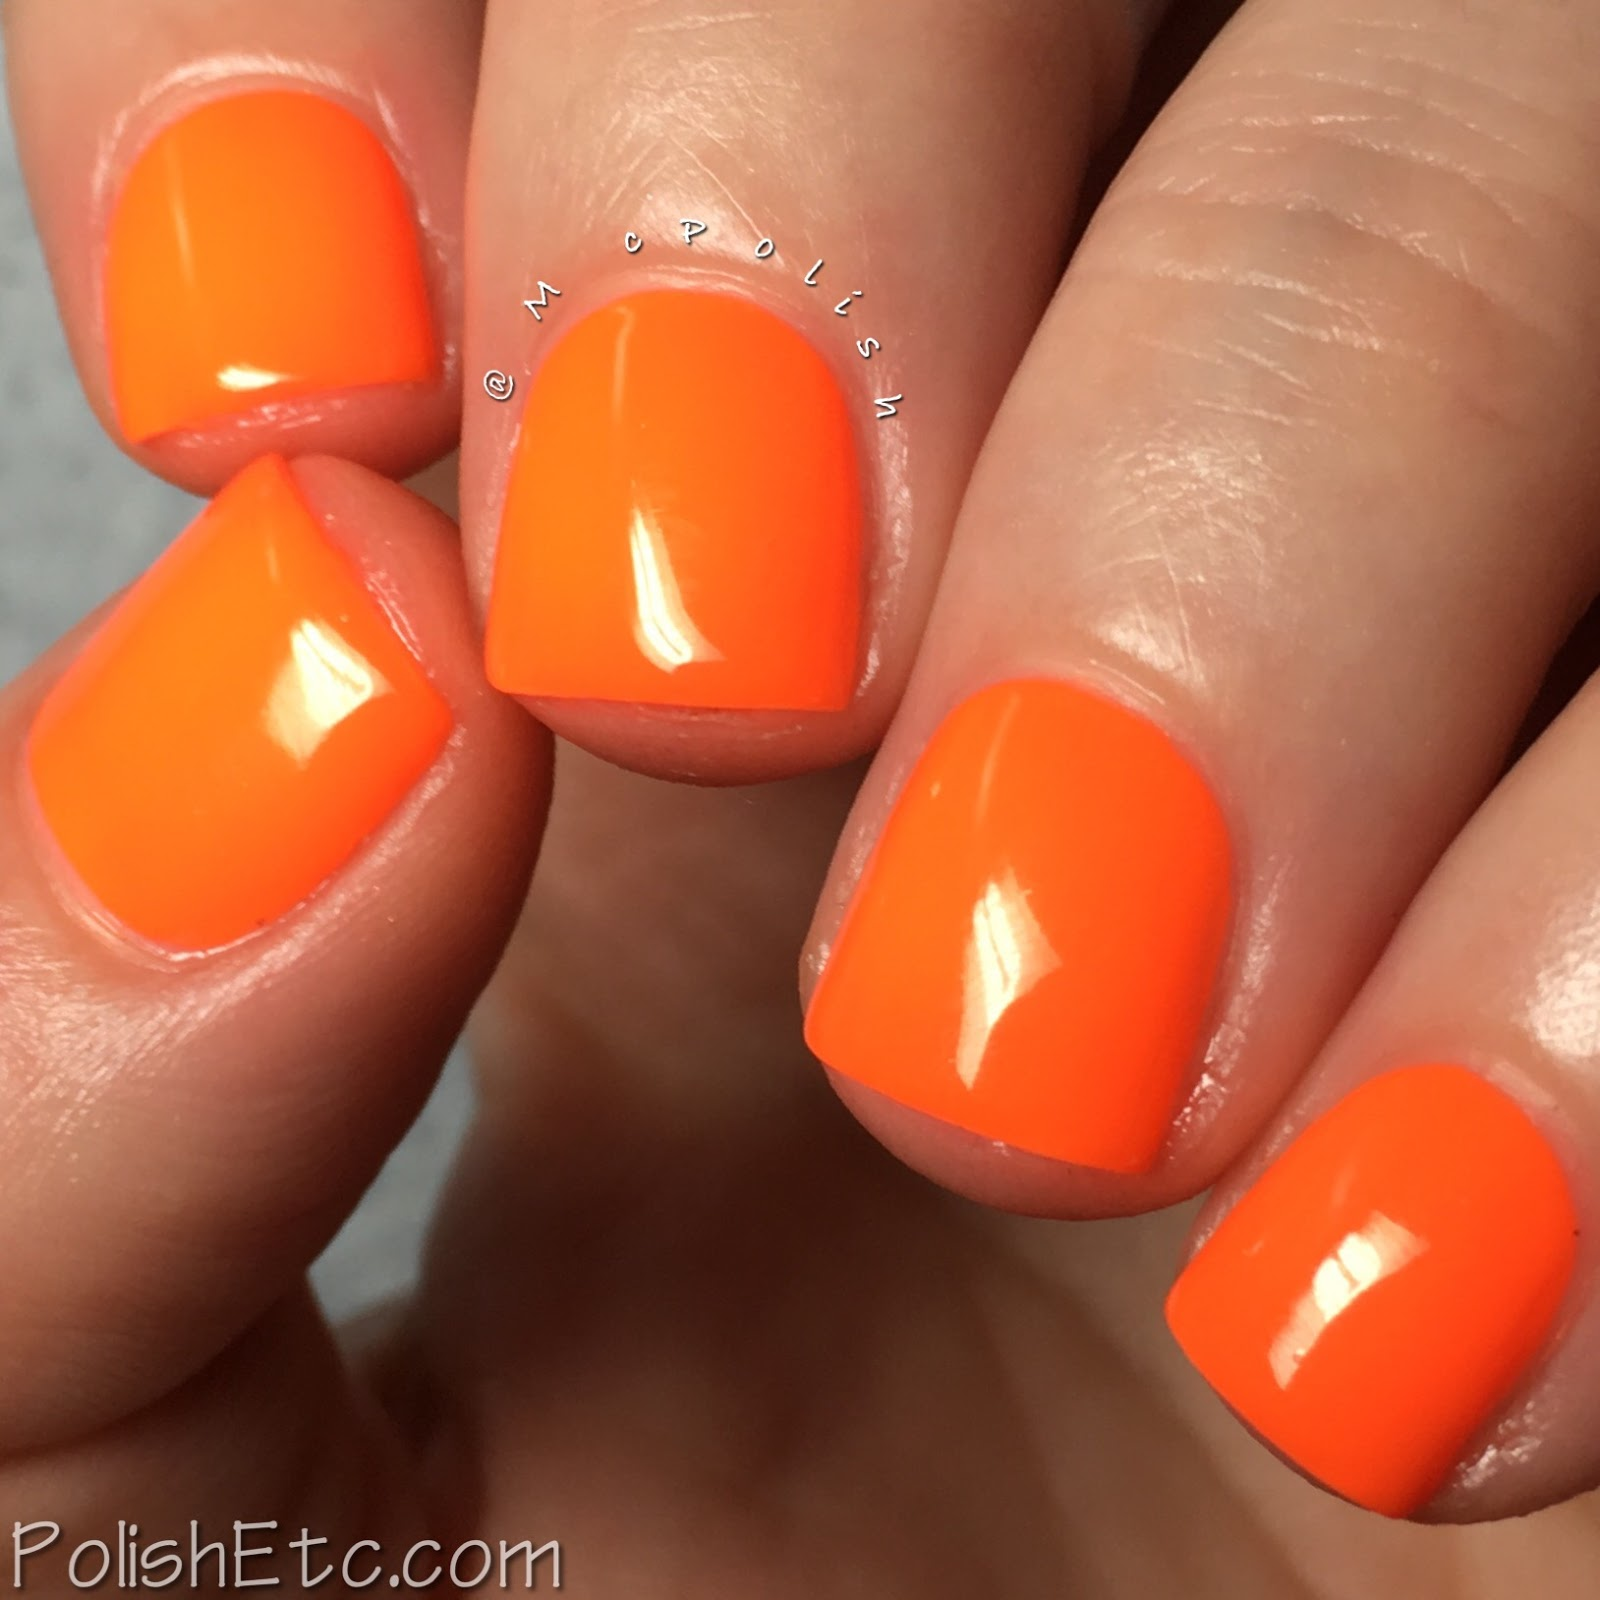 KBShimmer - All The Bright Moves Collection - McPolish - Please Don't Glow Girl